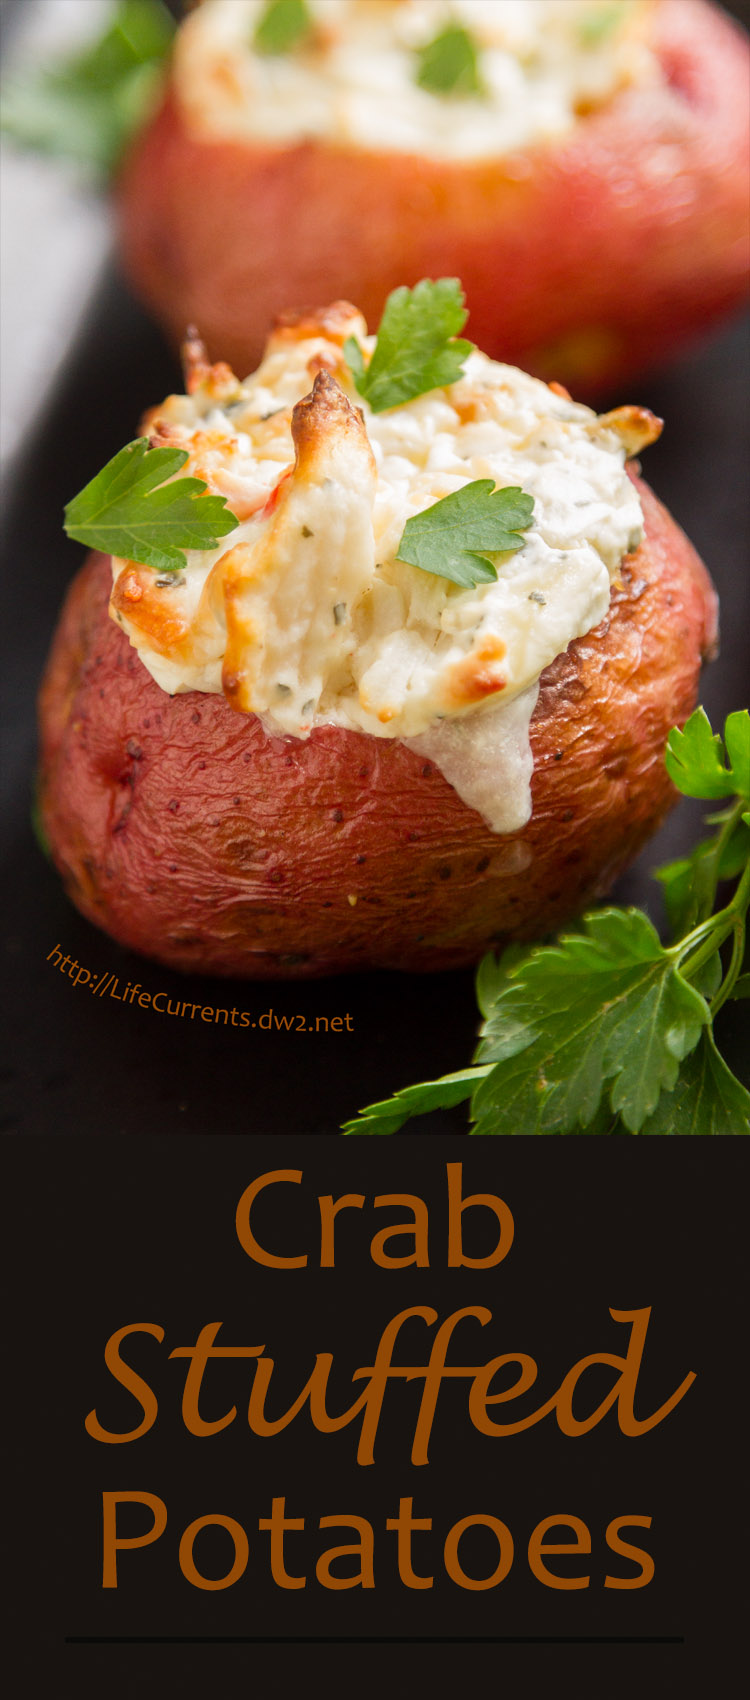 Crab Stuffed Baked Potatoes - Rich creamy crab filling inside earthy baked potatoes. These can be a great main course for dinner, a light lunch, or a fancy appetizer!